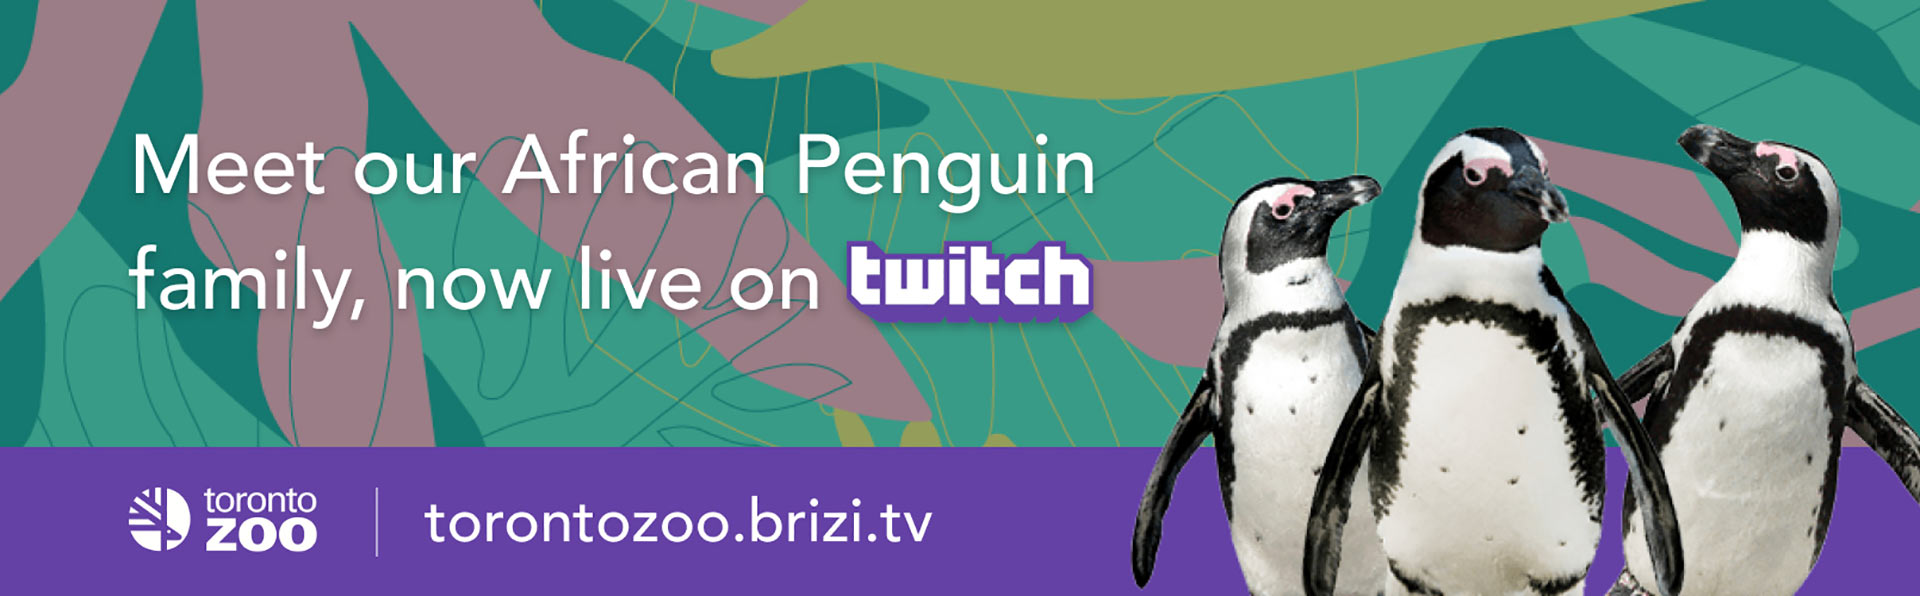 Meet our African Penguin family, now live on Twitch